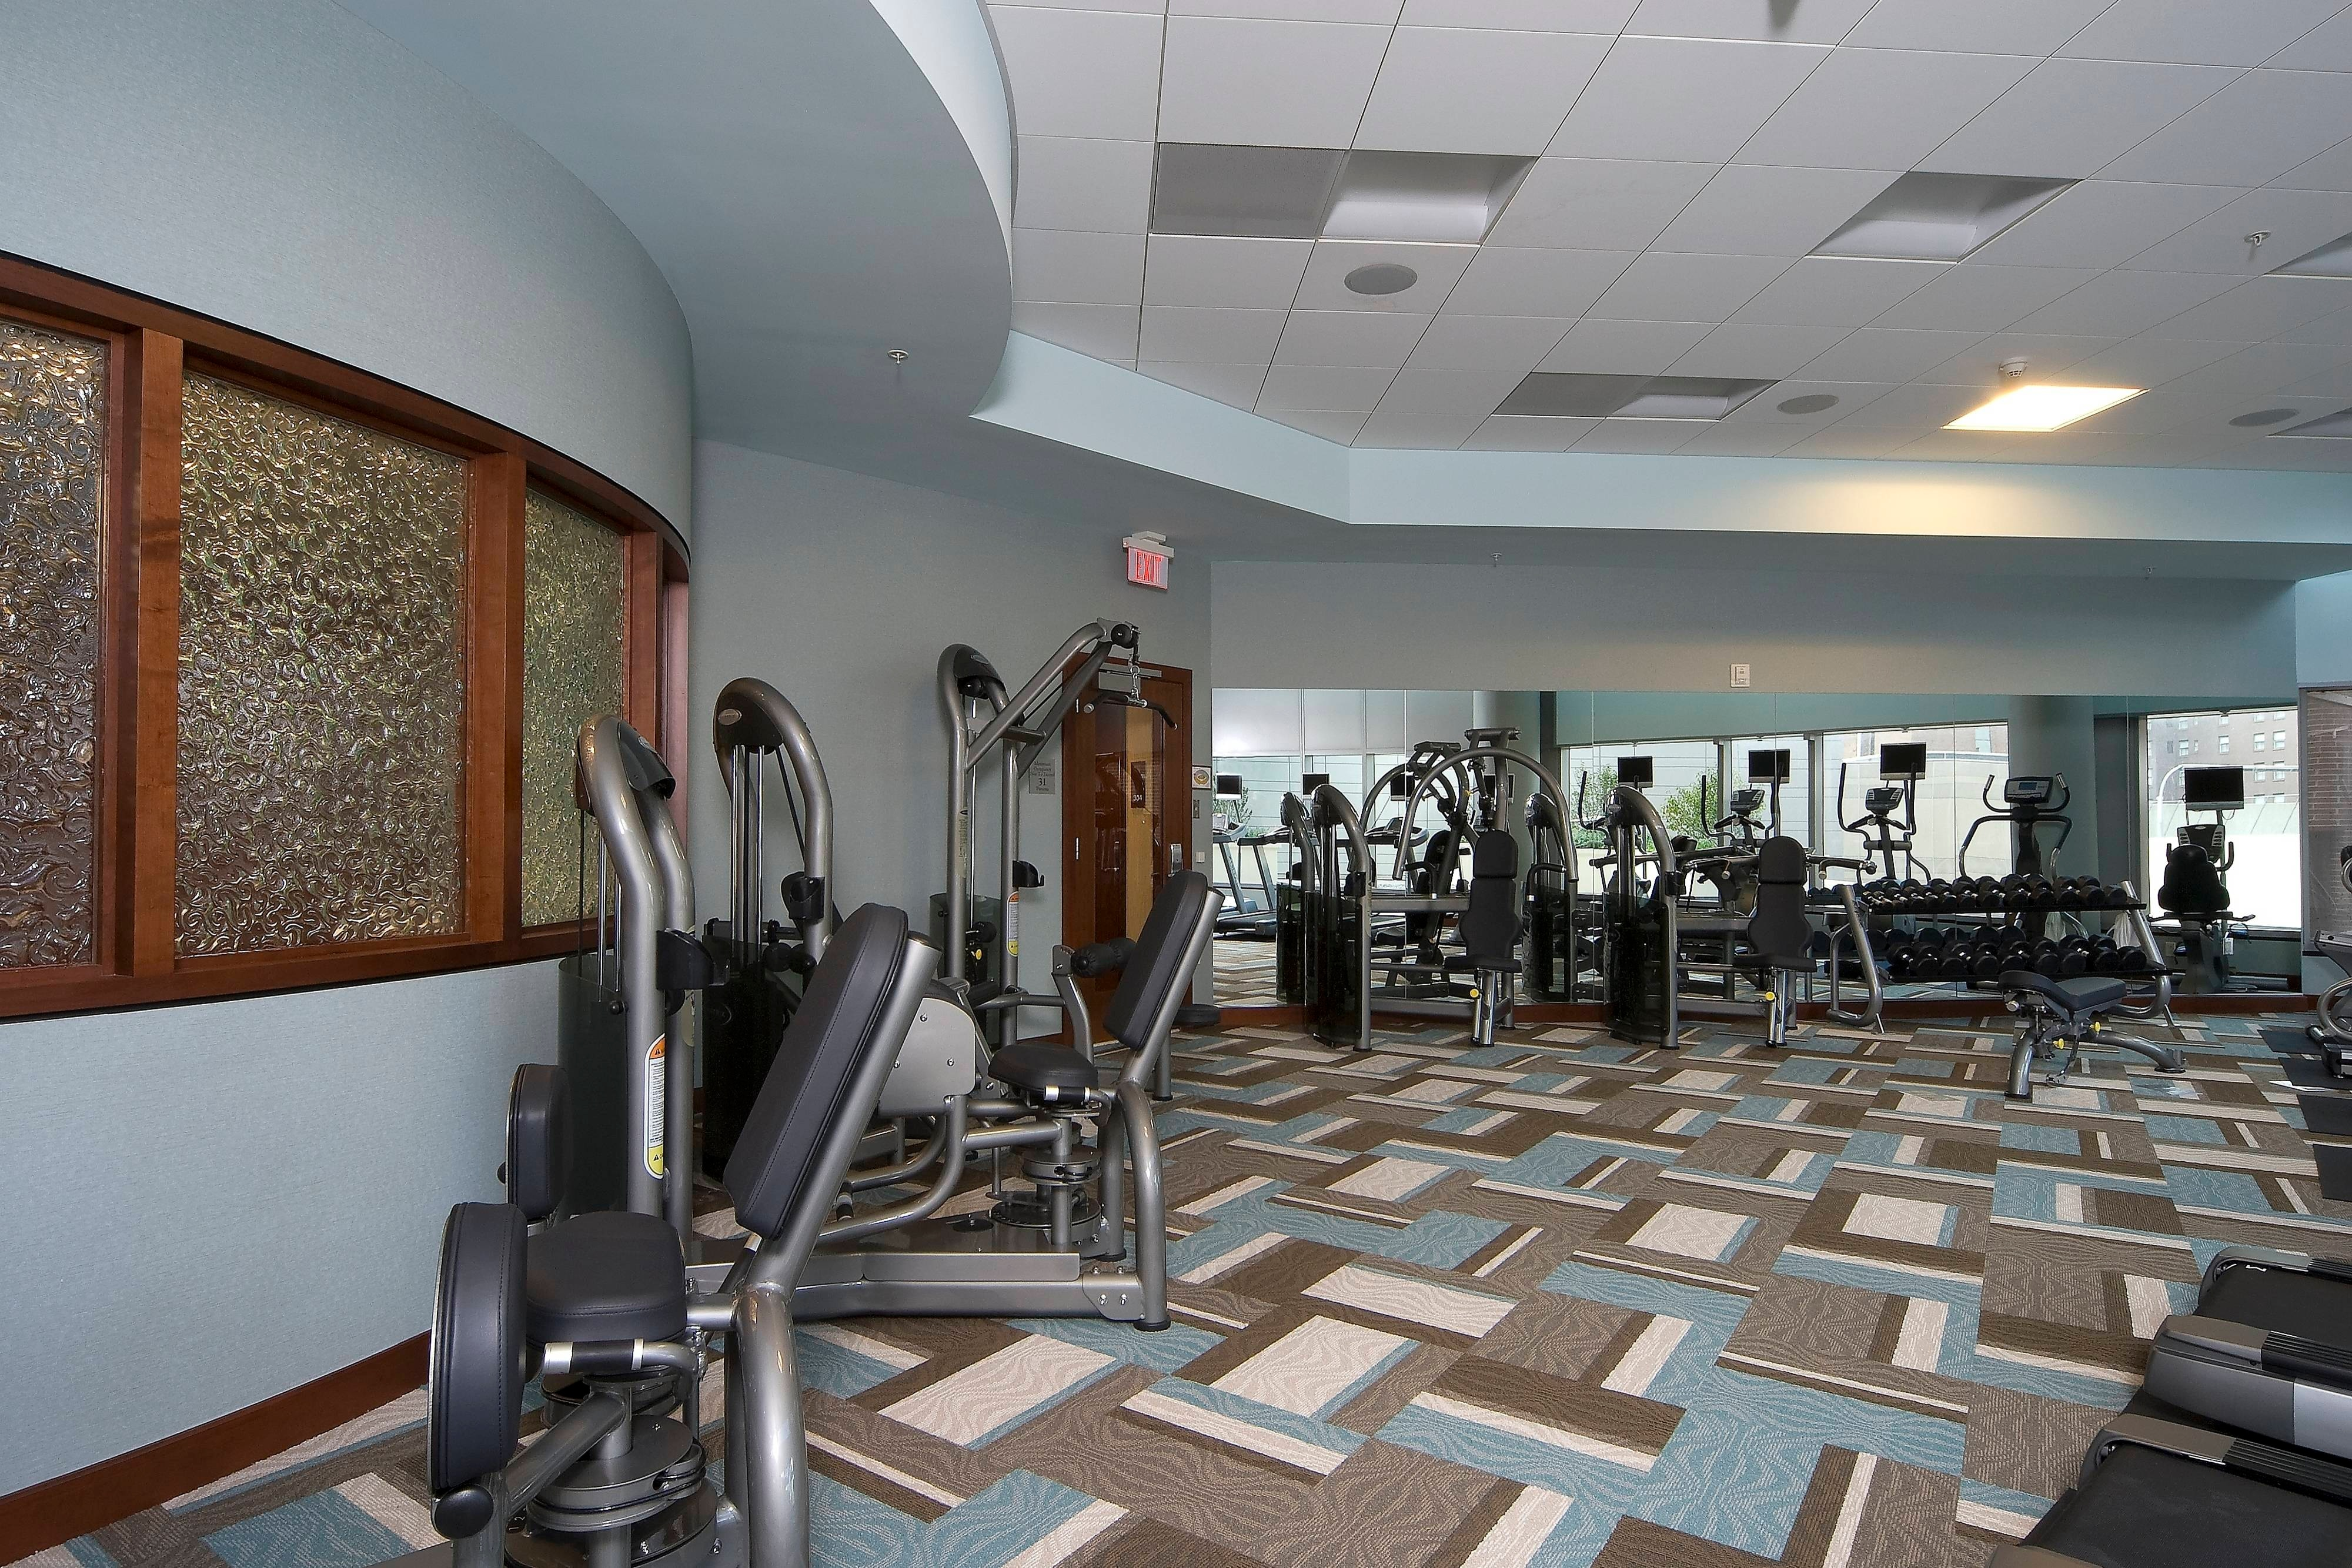 JW Marriott Grand Rapids Fitness Center